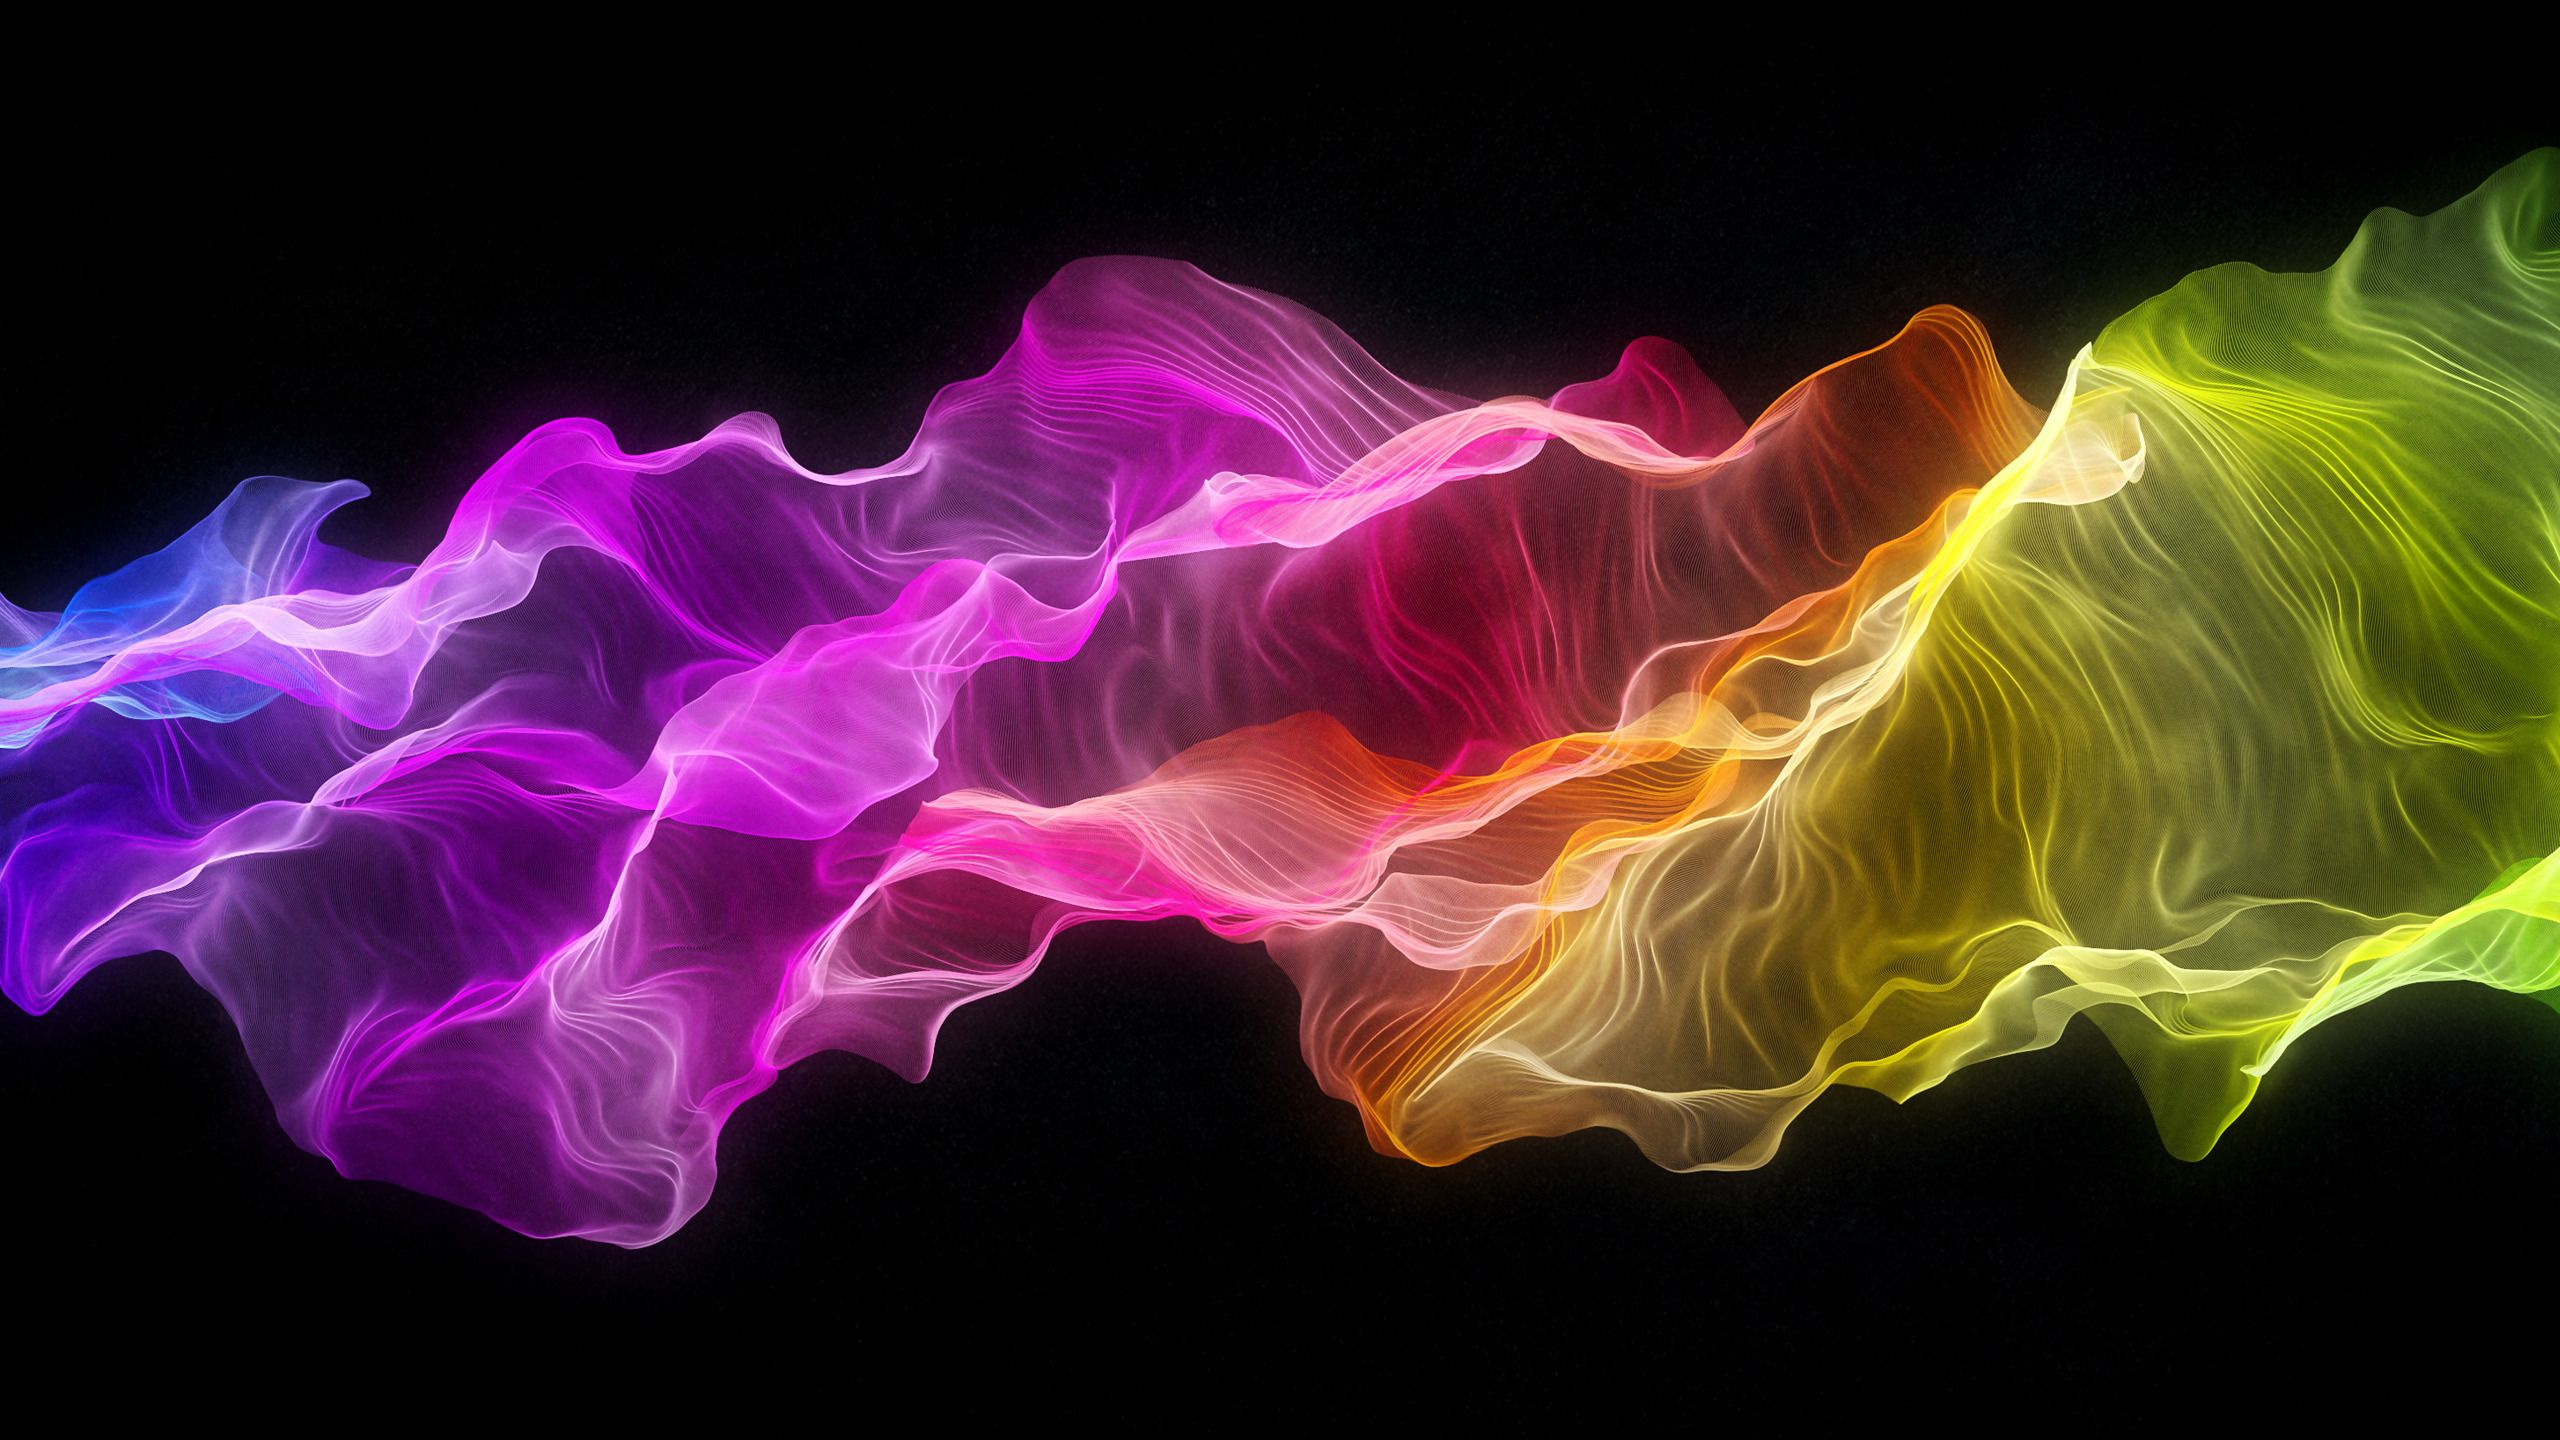 Neon background playing with computer designs - Love wallpaper 2048x1152 ...